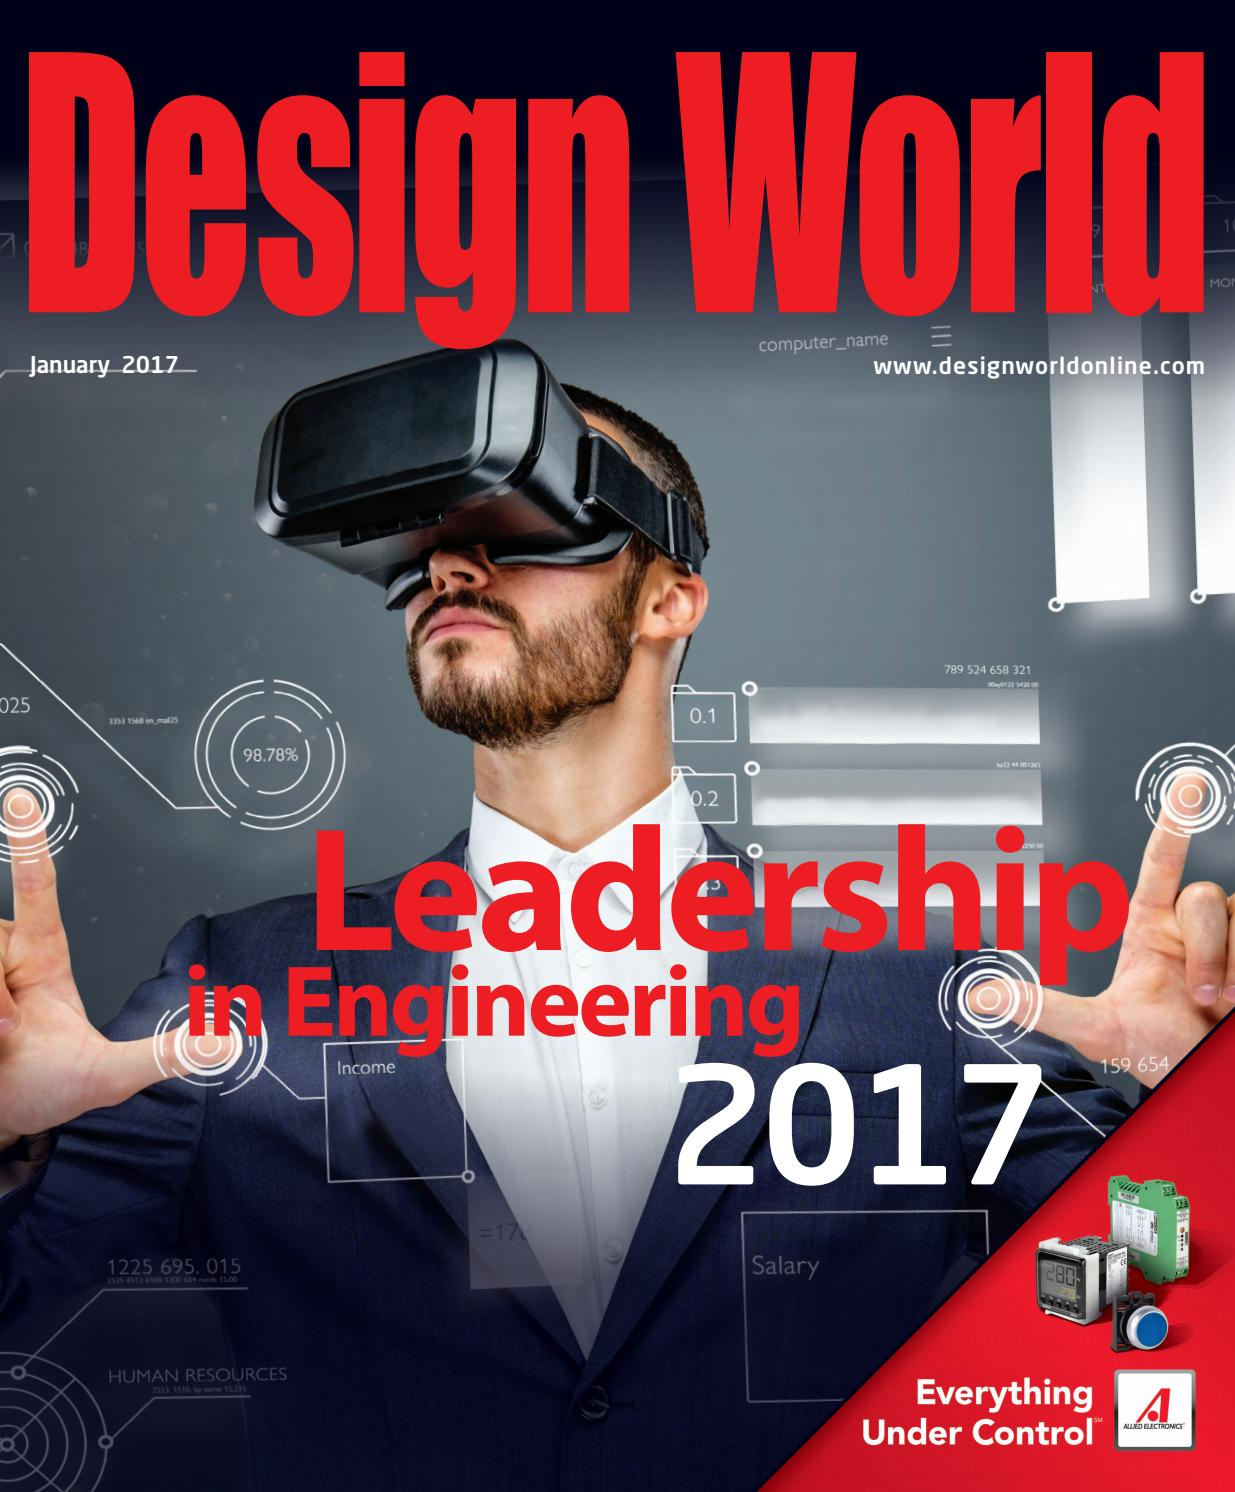 Design World January 2017 Main Issue By Wtwh Media Llc Issuu Can Bus Diagram Http Sturntechcom Blog 2010 11 10 Debugginga